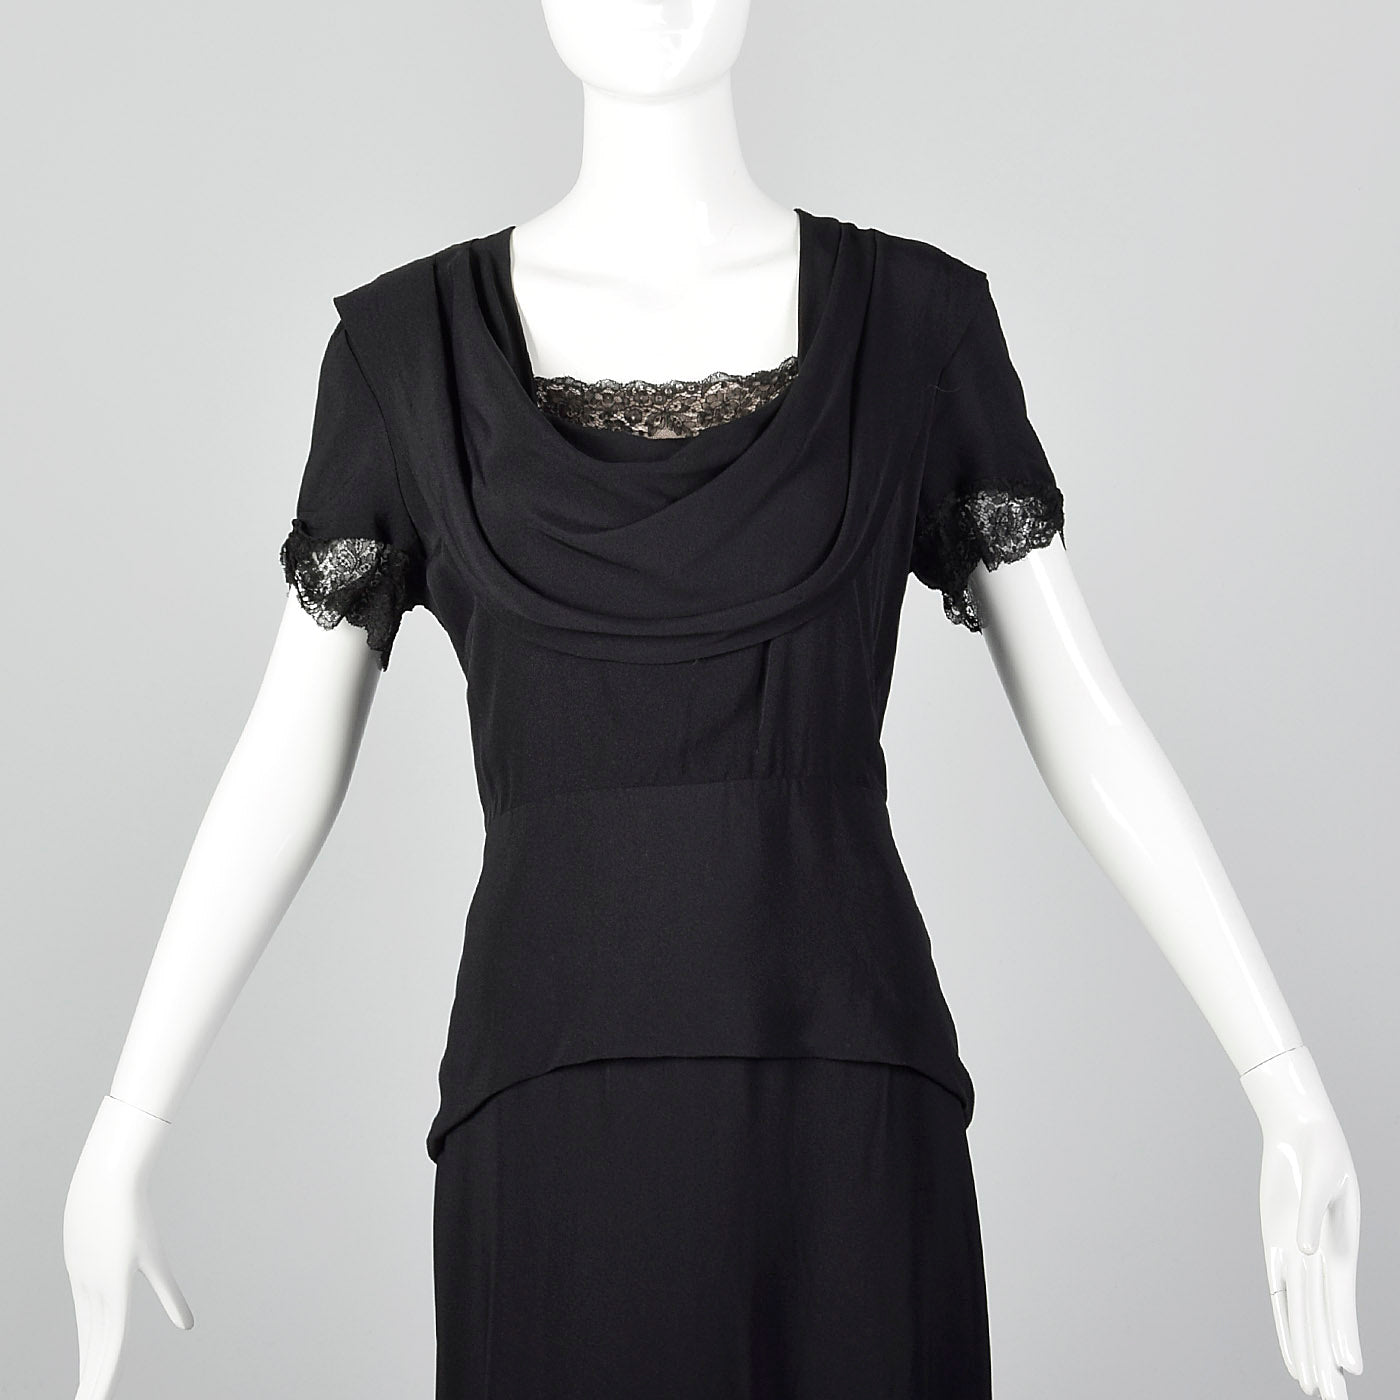 1940s Black Peplum Dress with Lace Collar and Cuffs